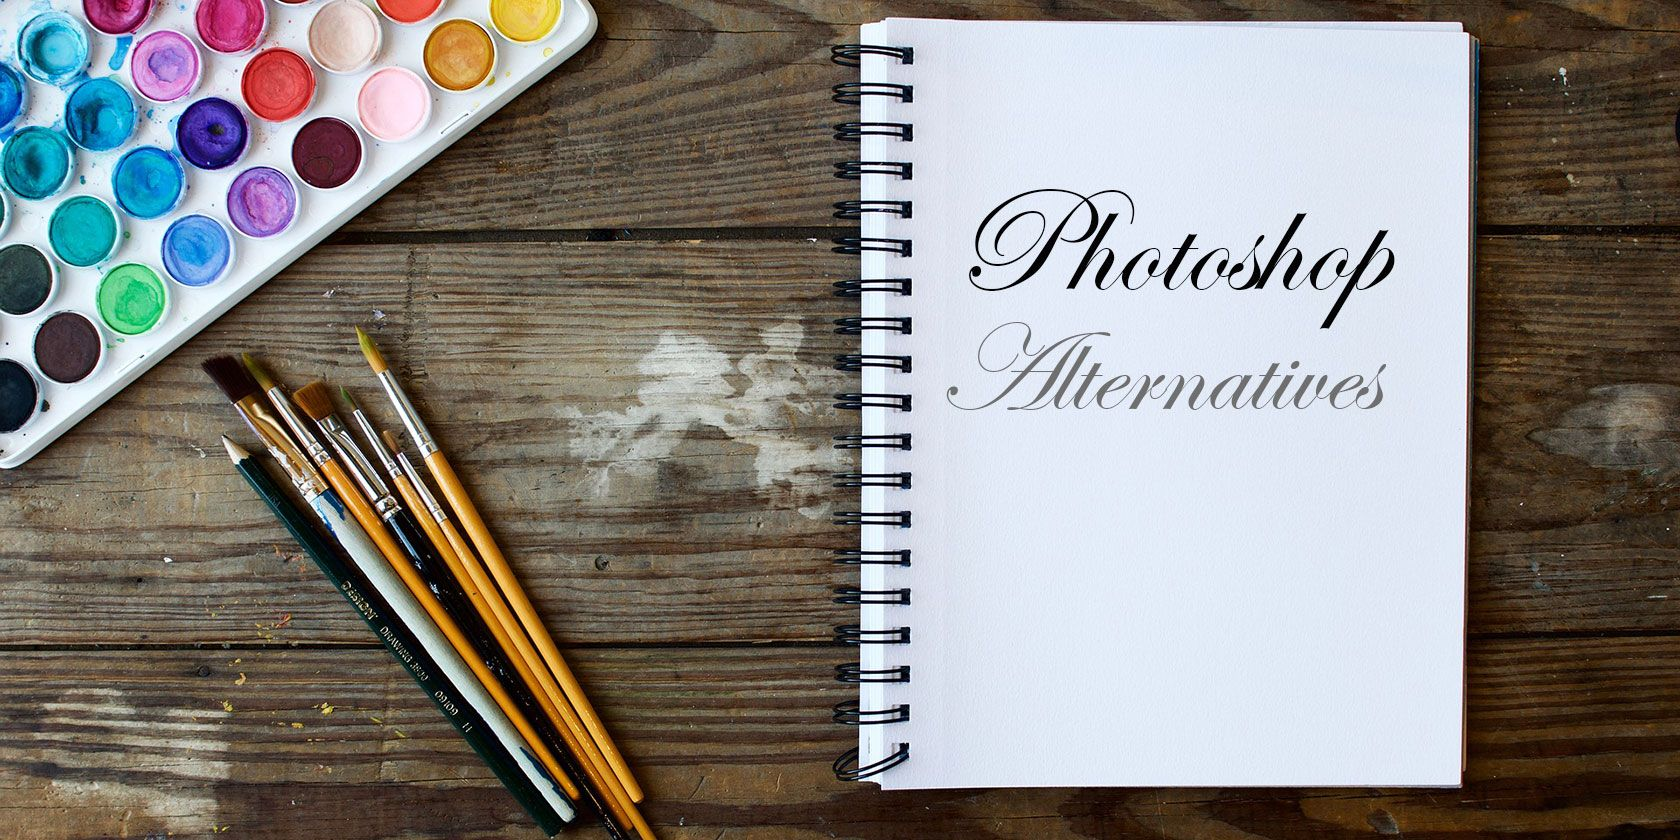 5 Little-Known Free Online Image Editing Tools to Replace Photoshop